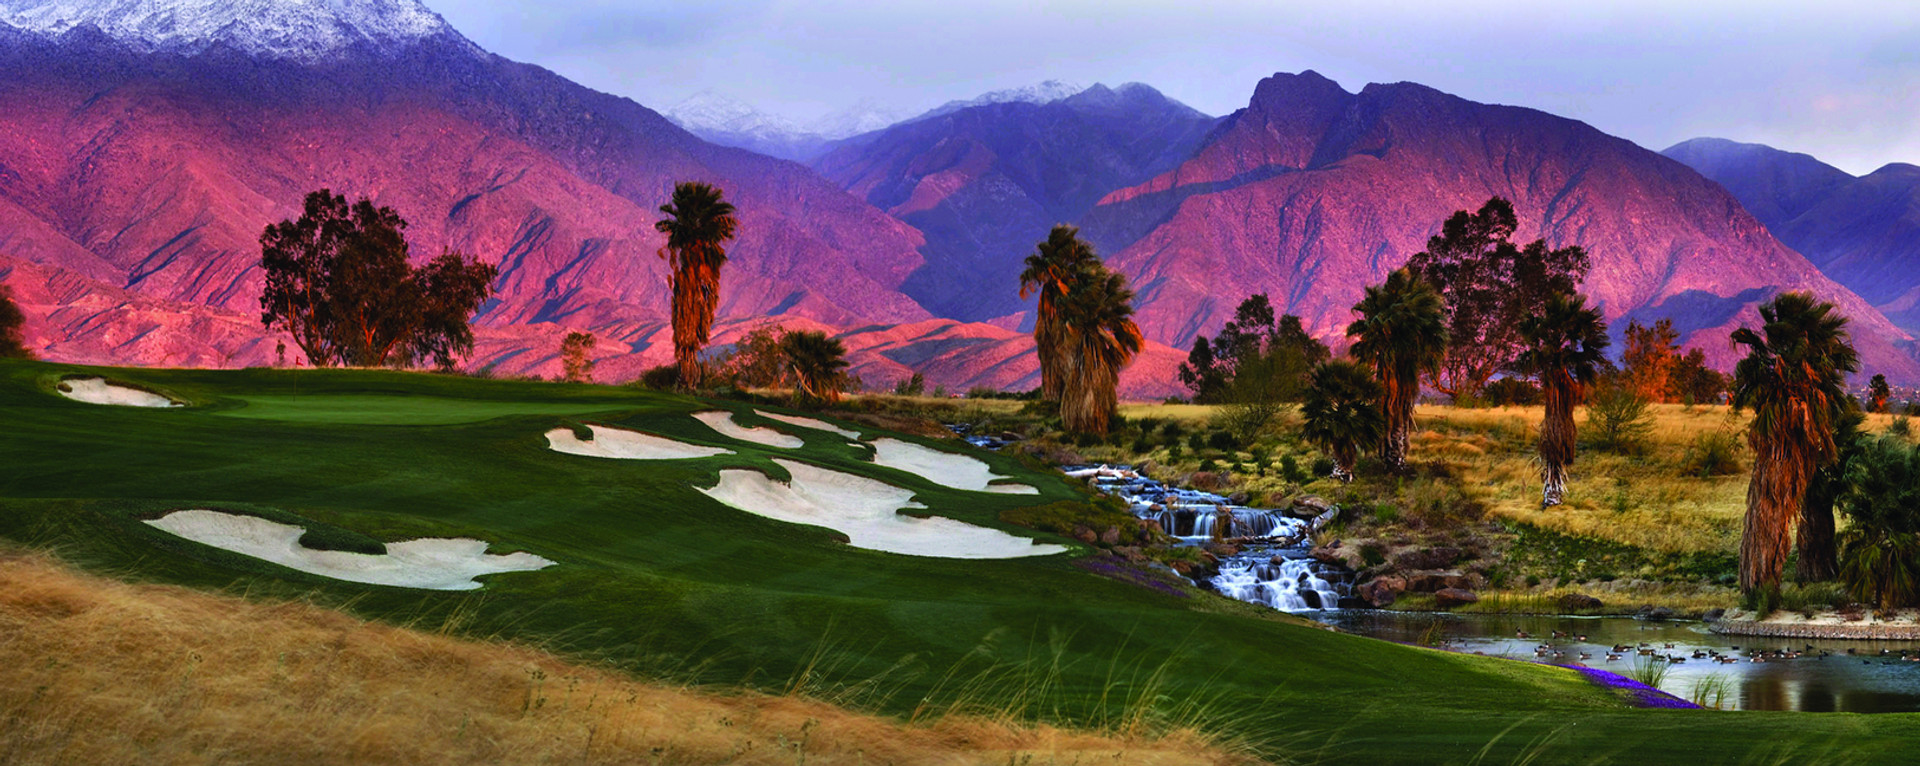 Rams Hill Golf at sunset